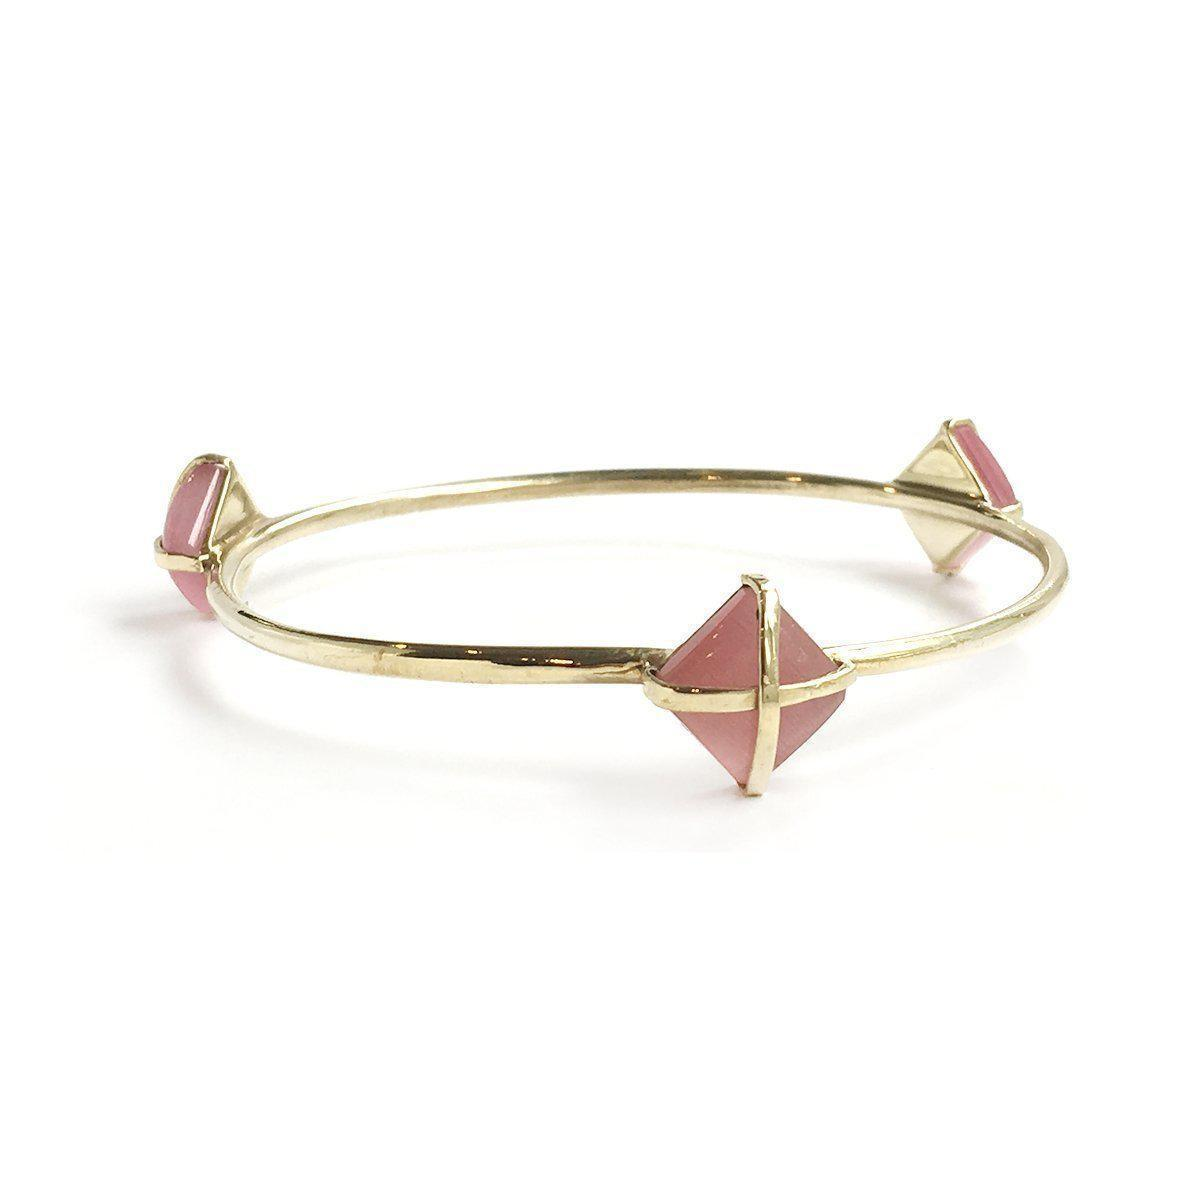 Martin 24k Gold Gemstone Bangle Bracelets-Women - Jewelry - Bracelets-ADDISON WEEKS-Pink Quartz-Peccadilly